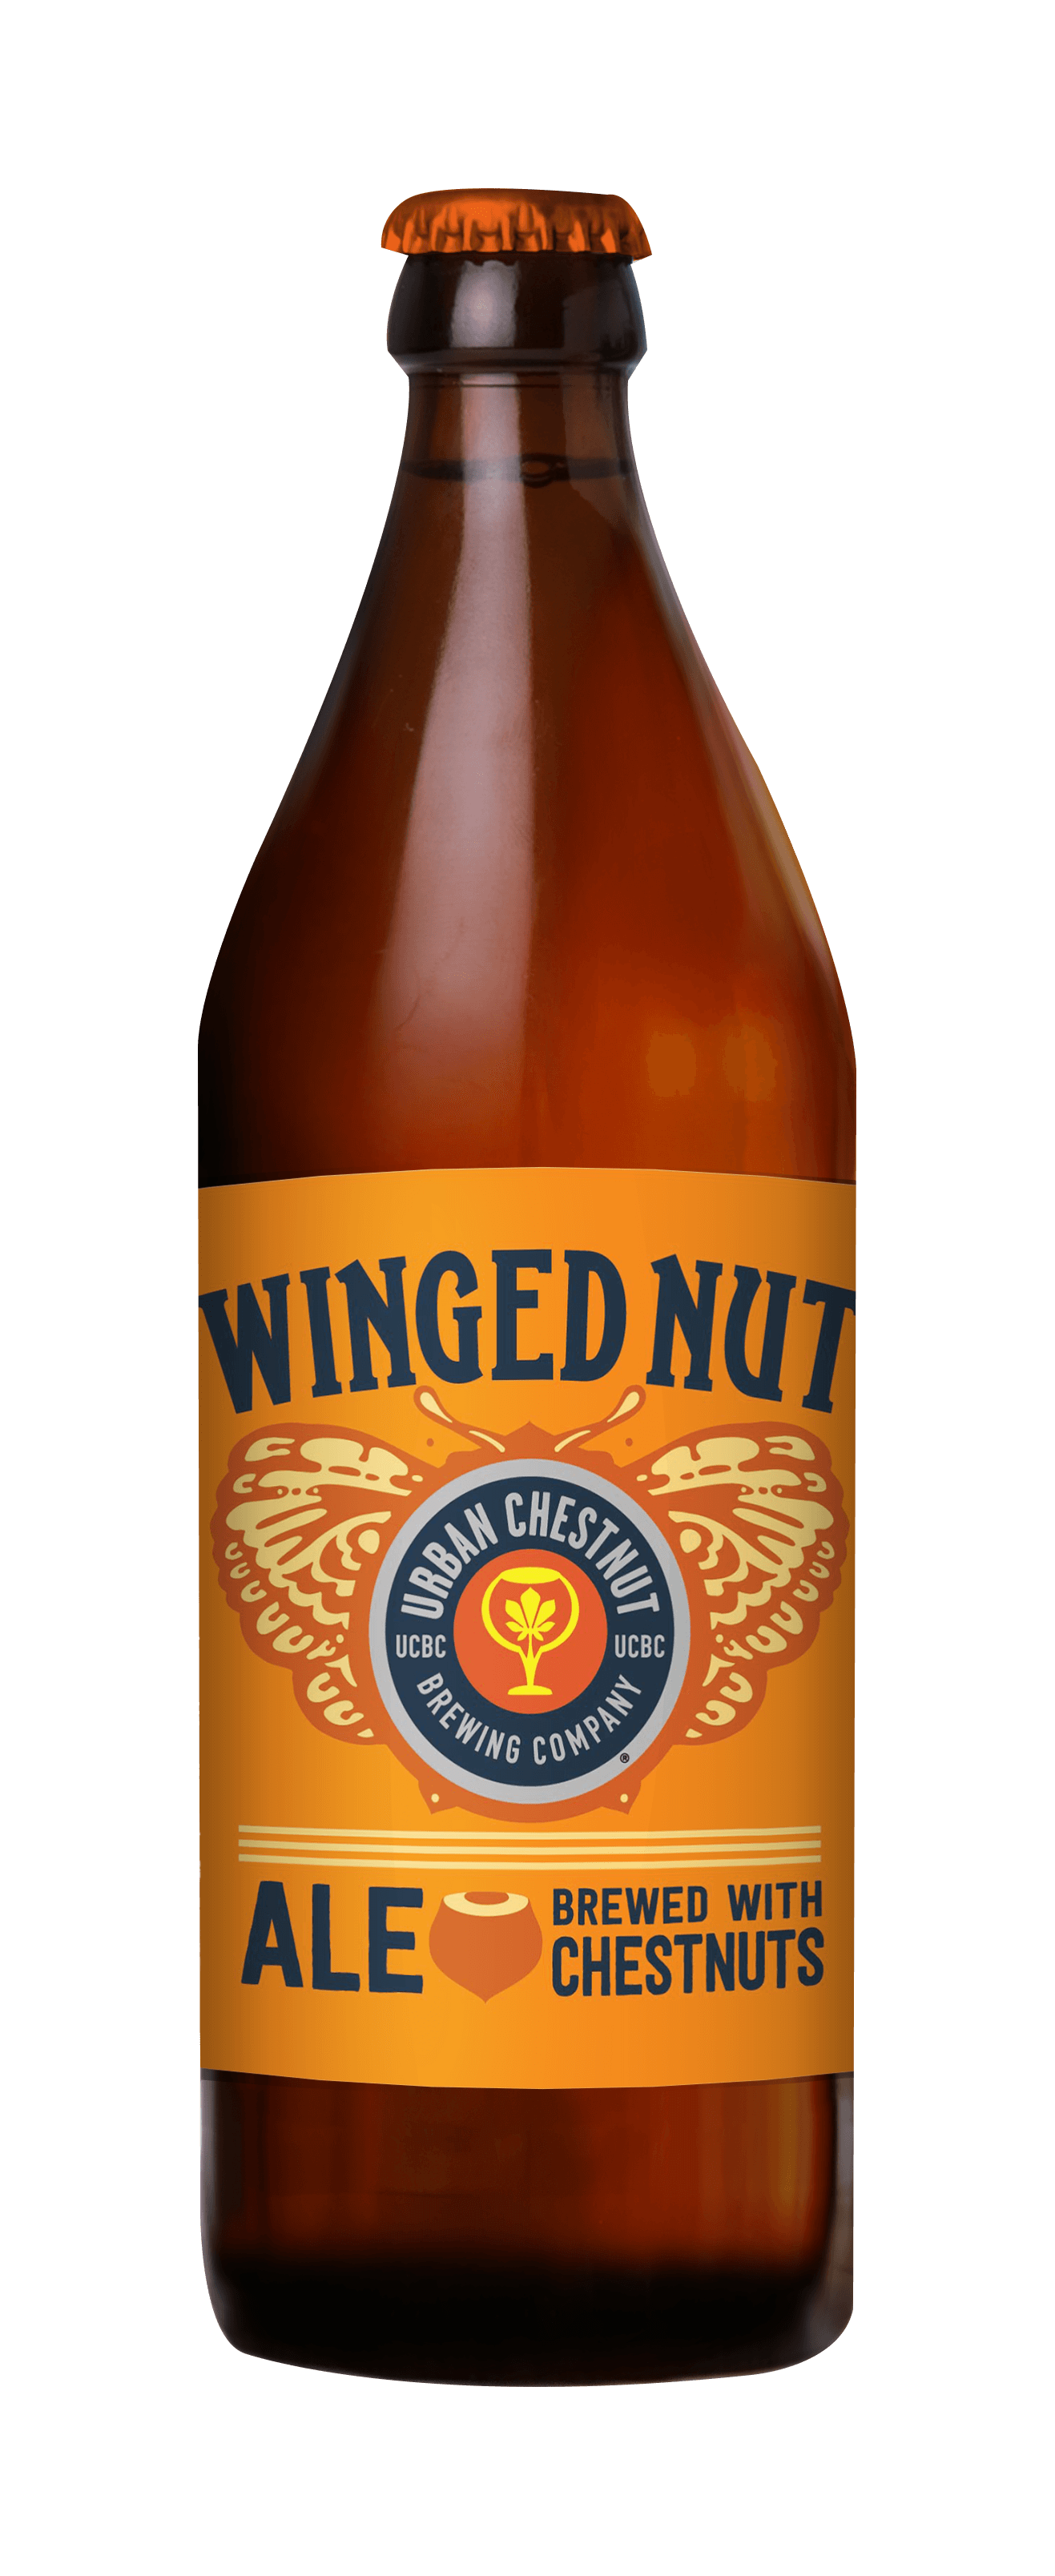 Winged Nut